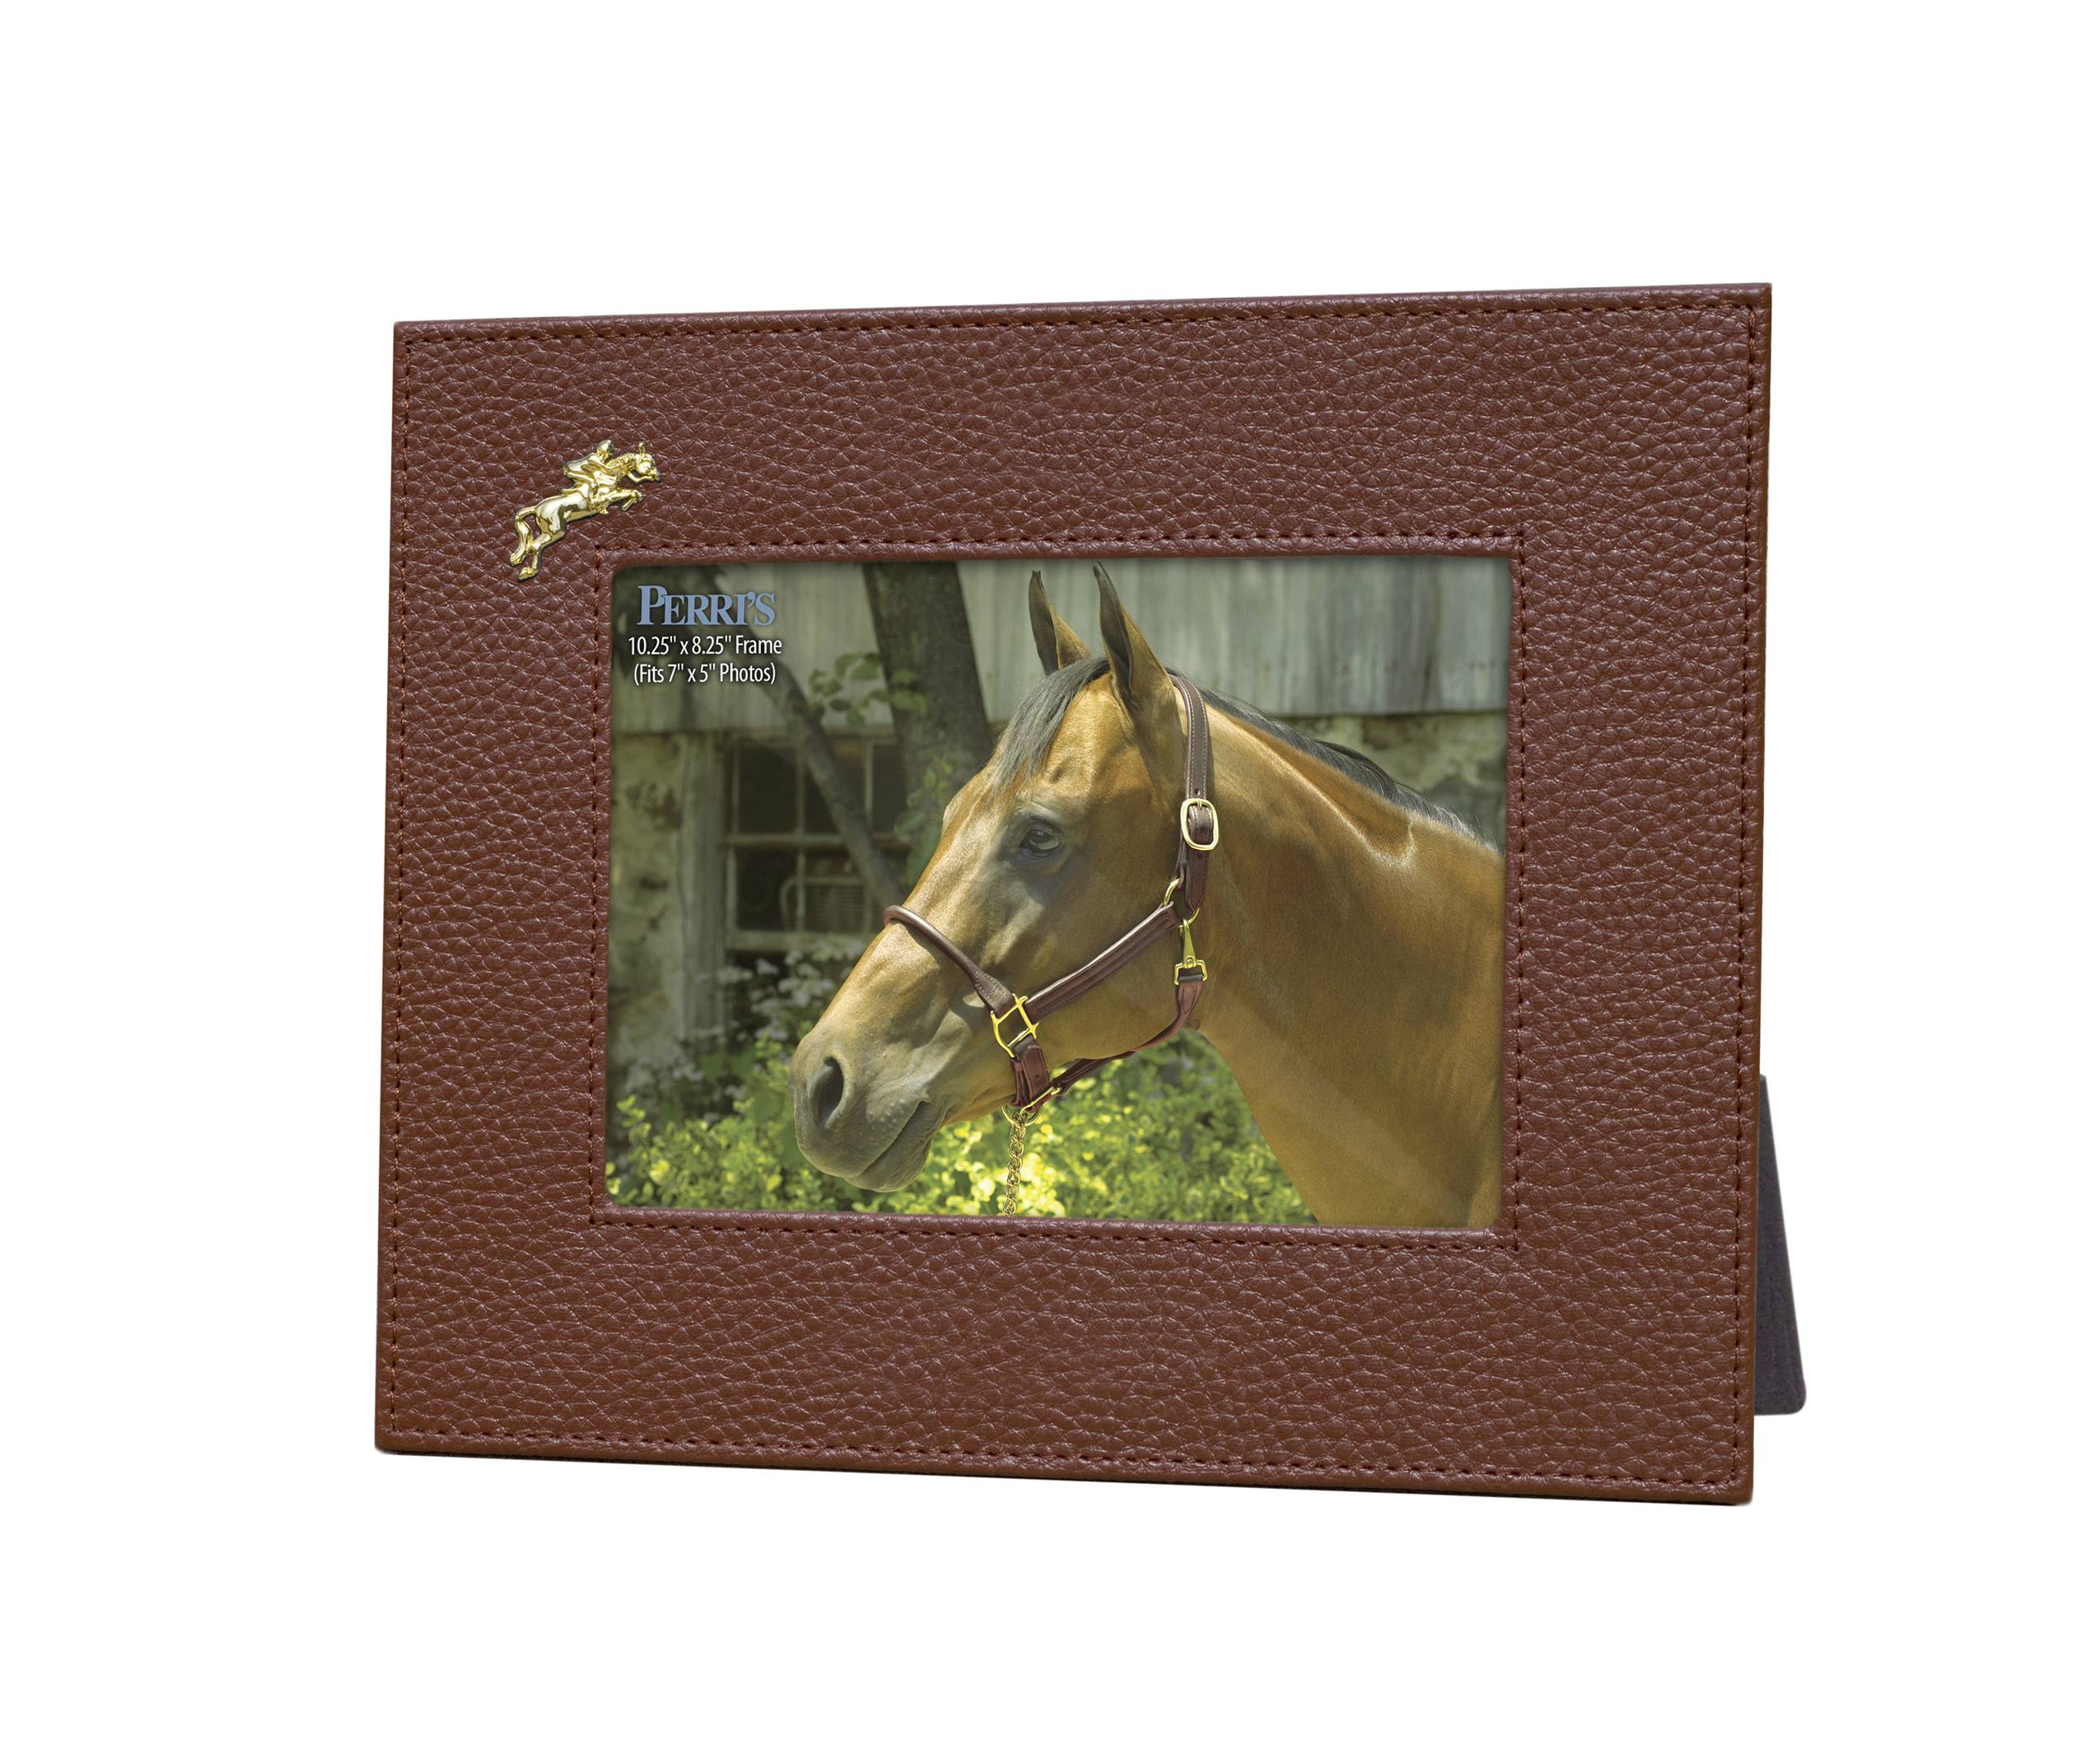 Perri's Picture Frame with Jumping Horse Accent